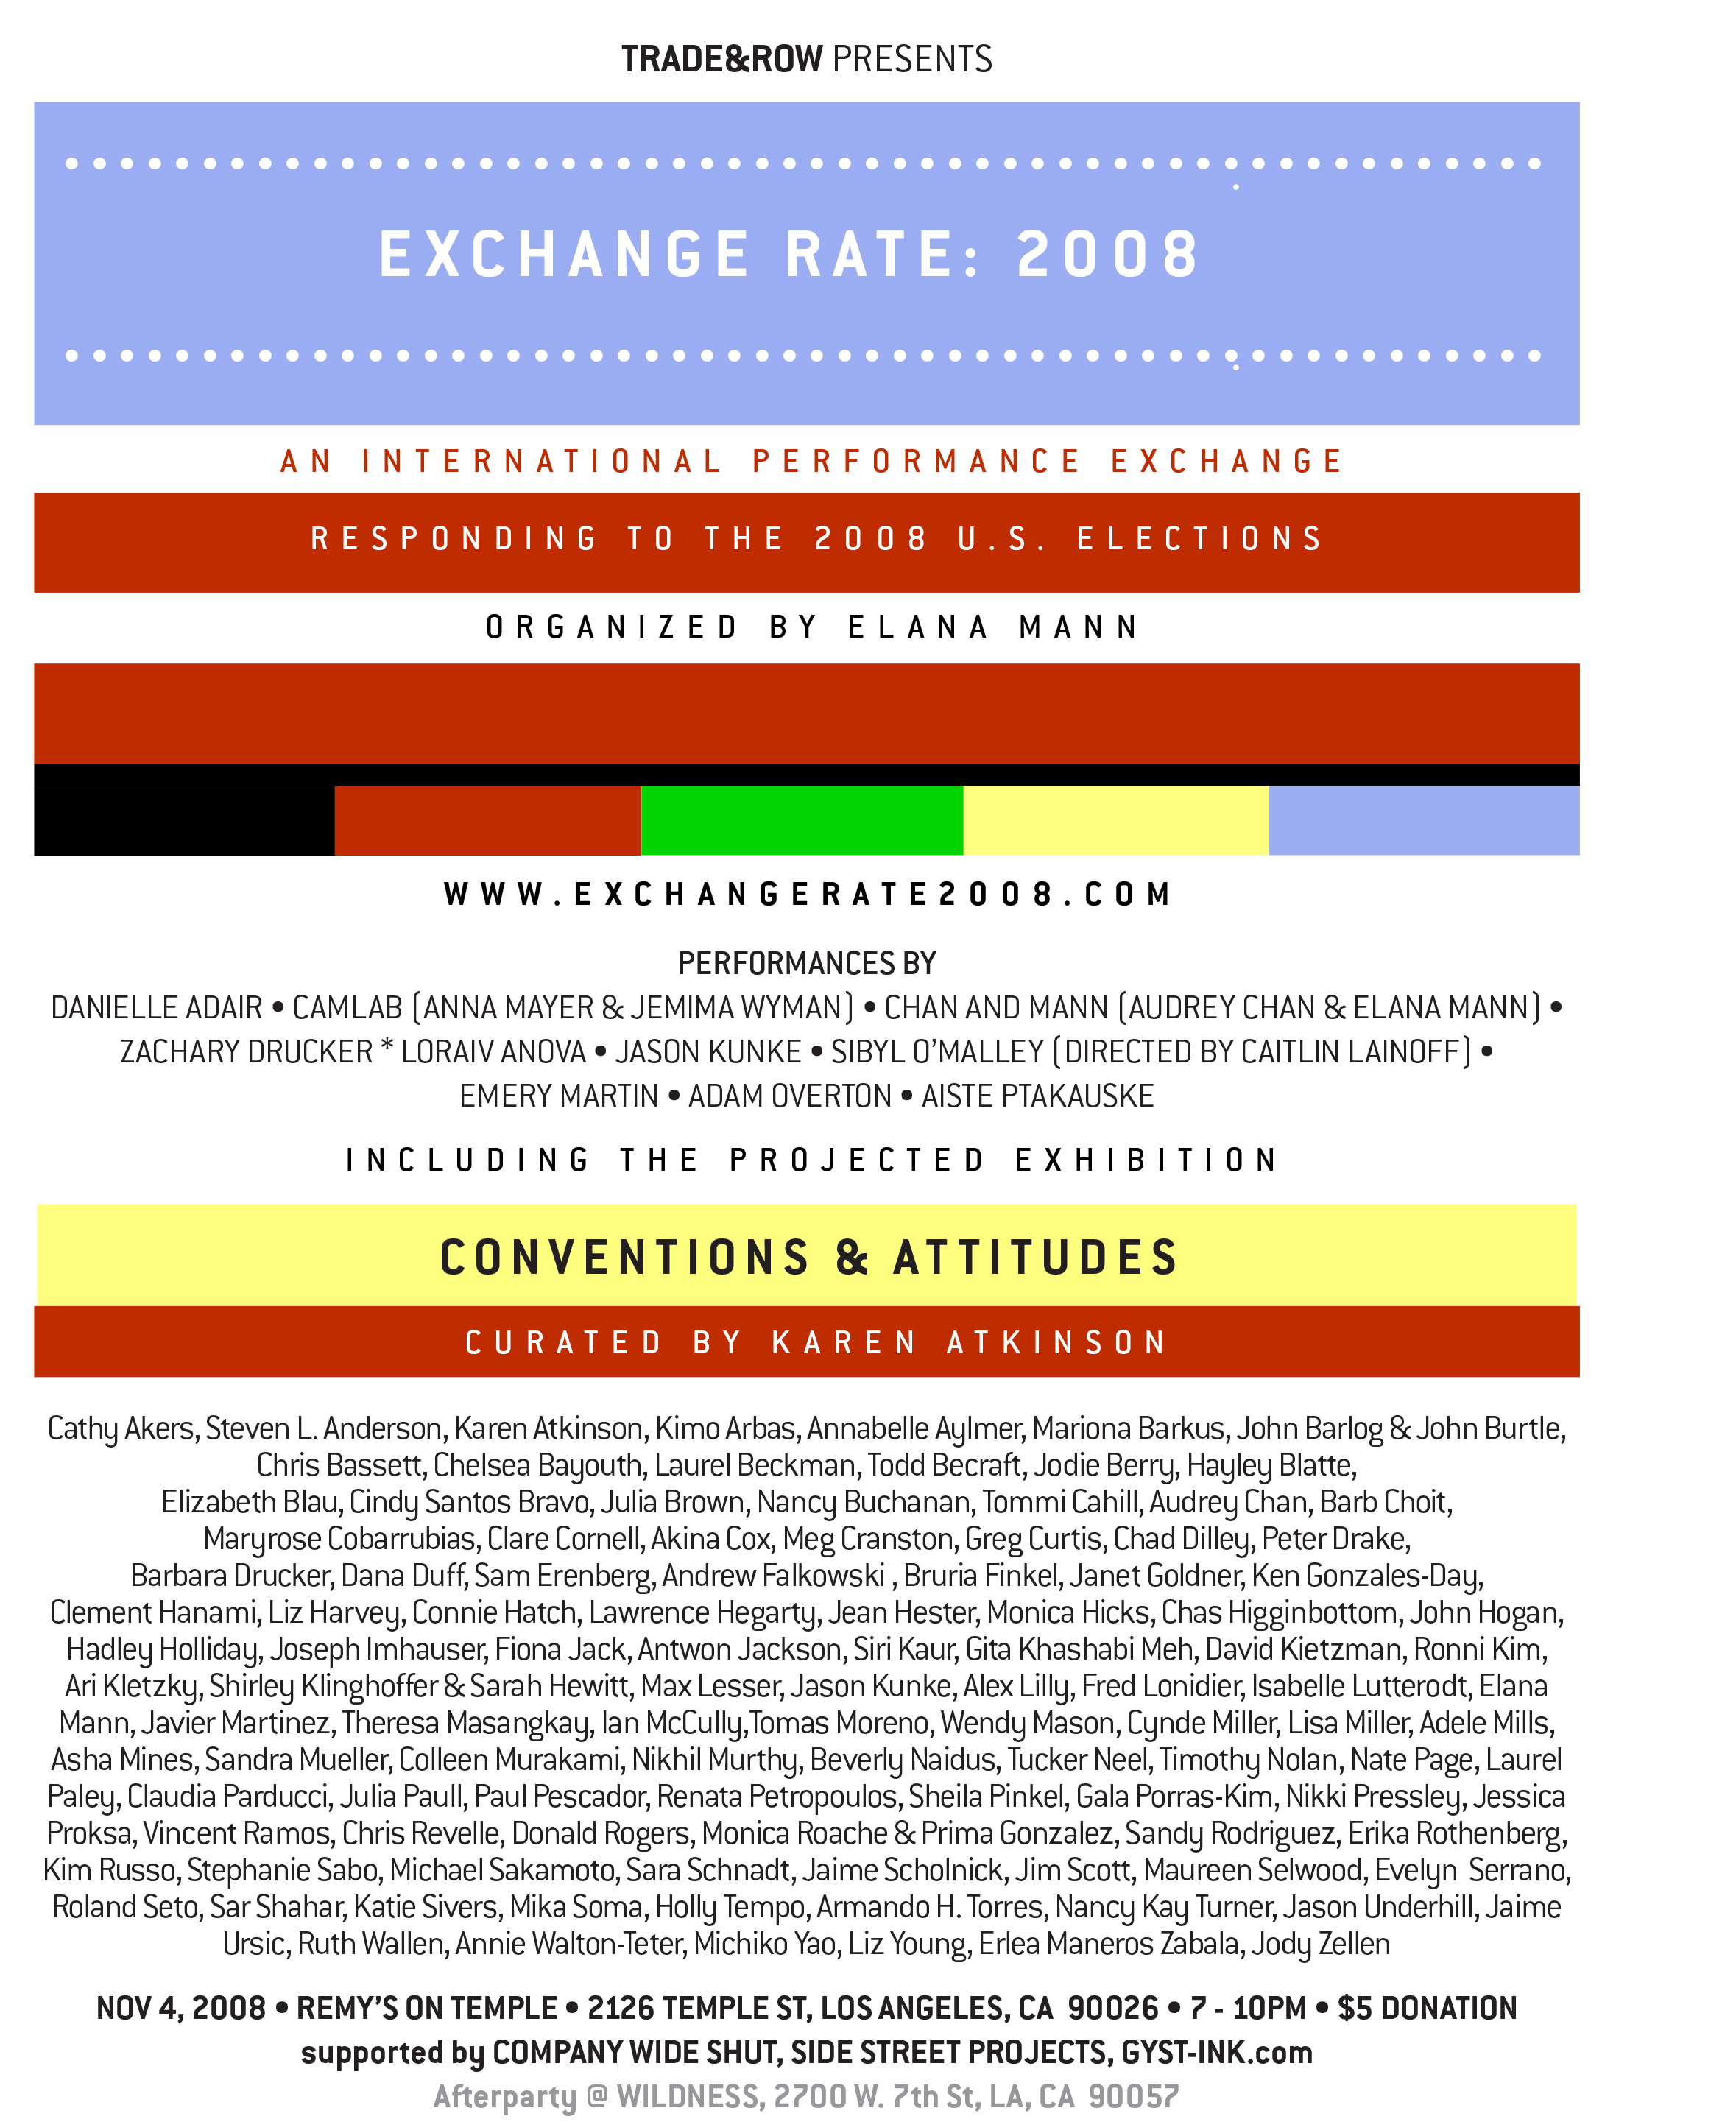 Exchange Rate/Conventions and Attitudes Flyer